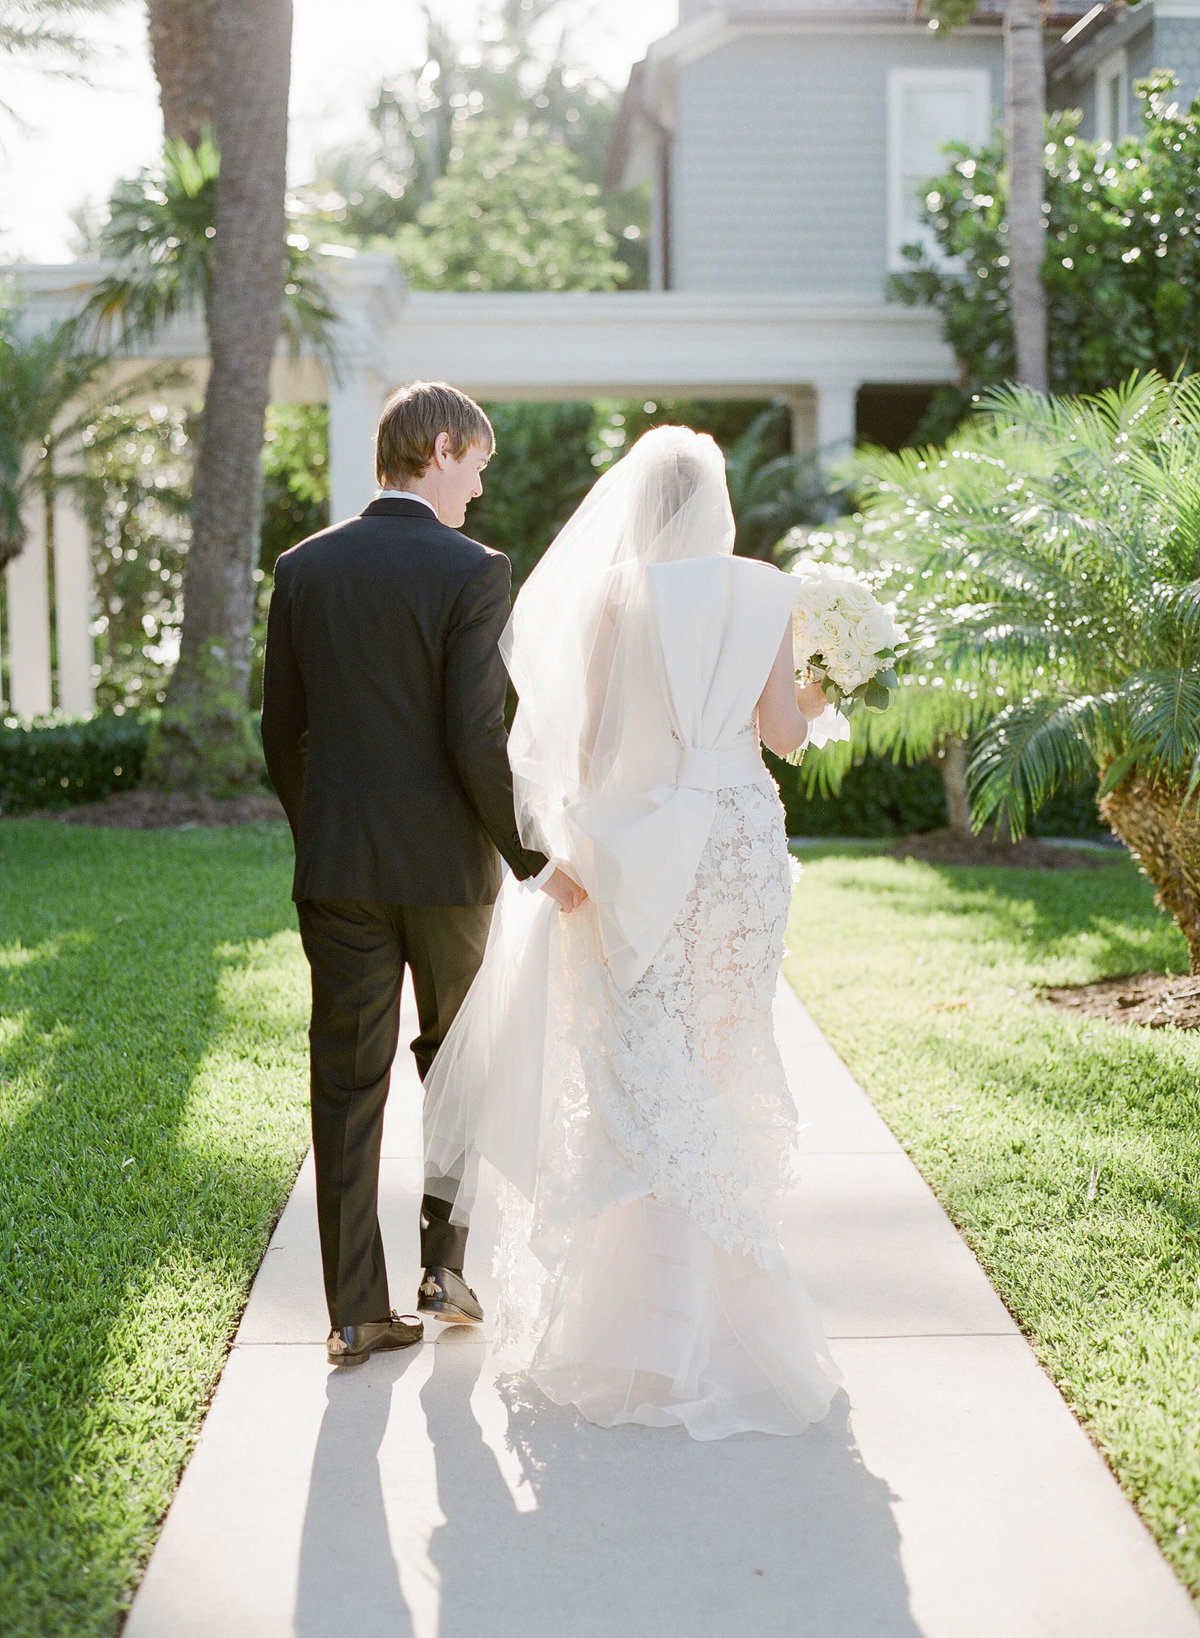 26-KTMerry-weddings-bride-groom-leaving-church-Palm-Beach